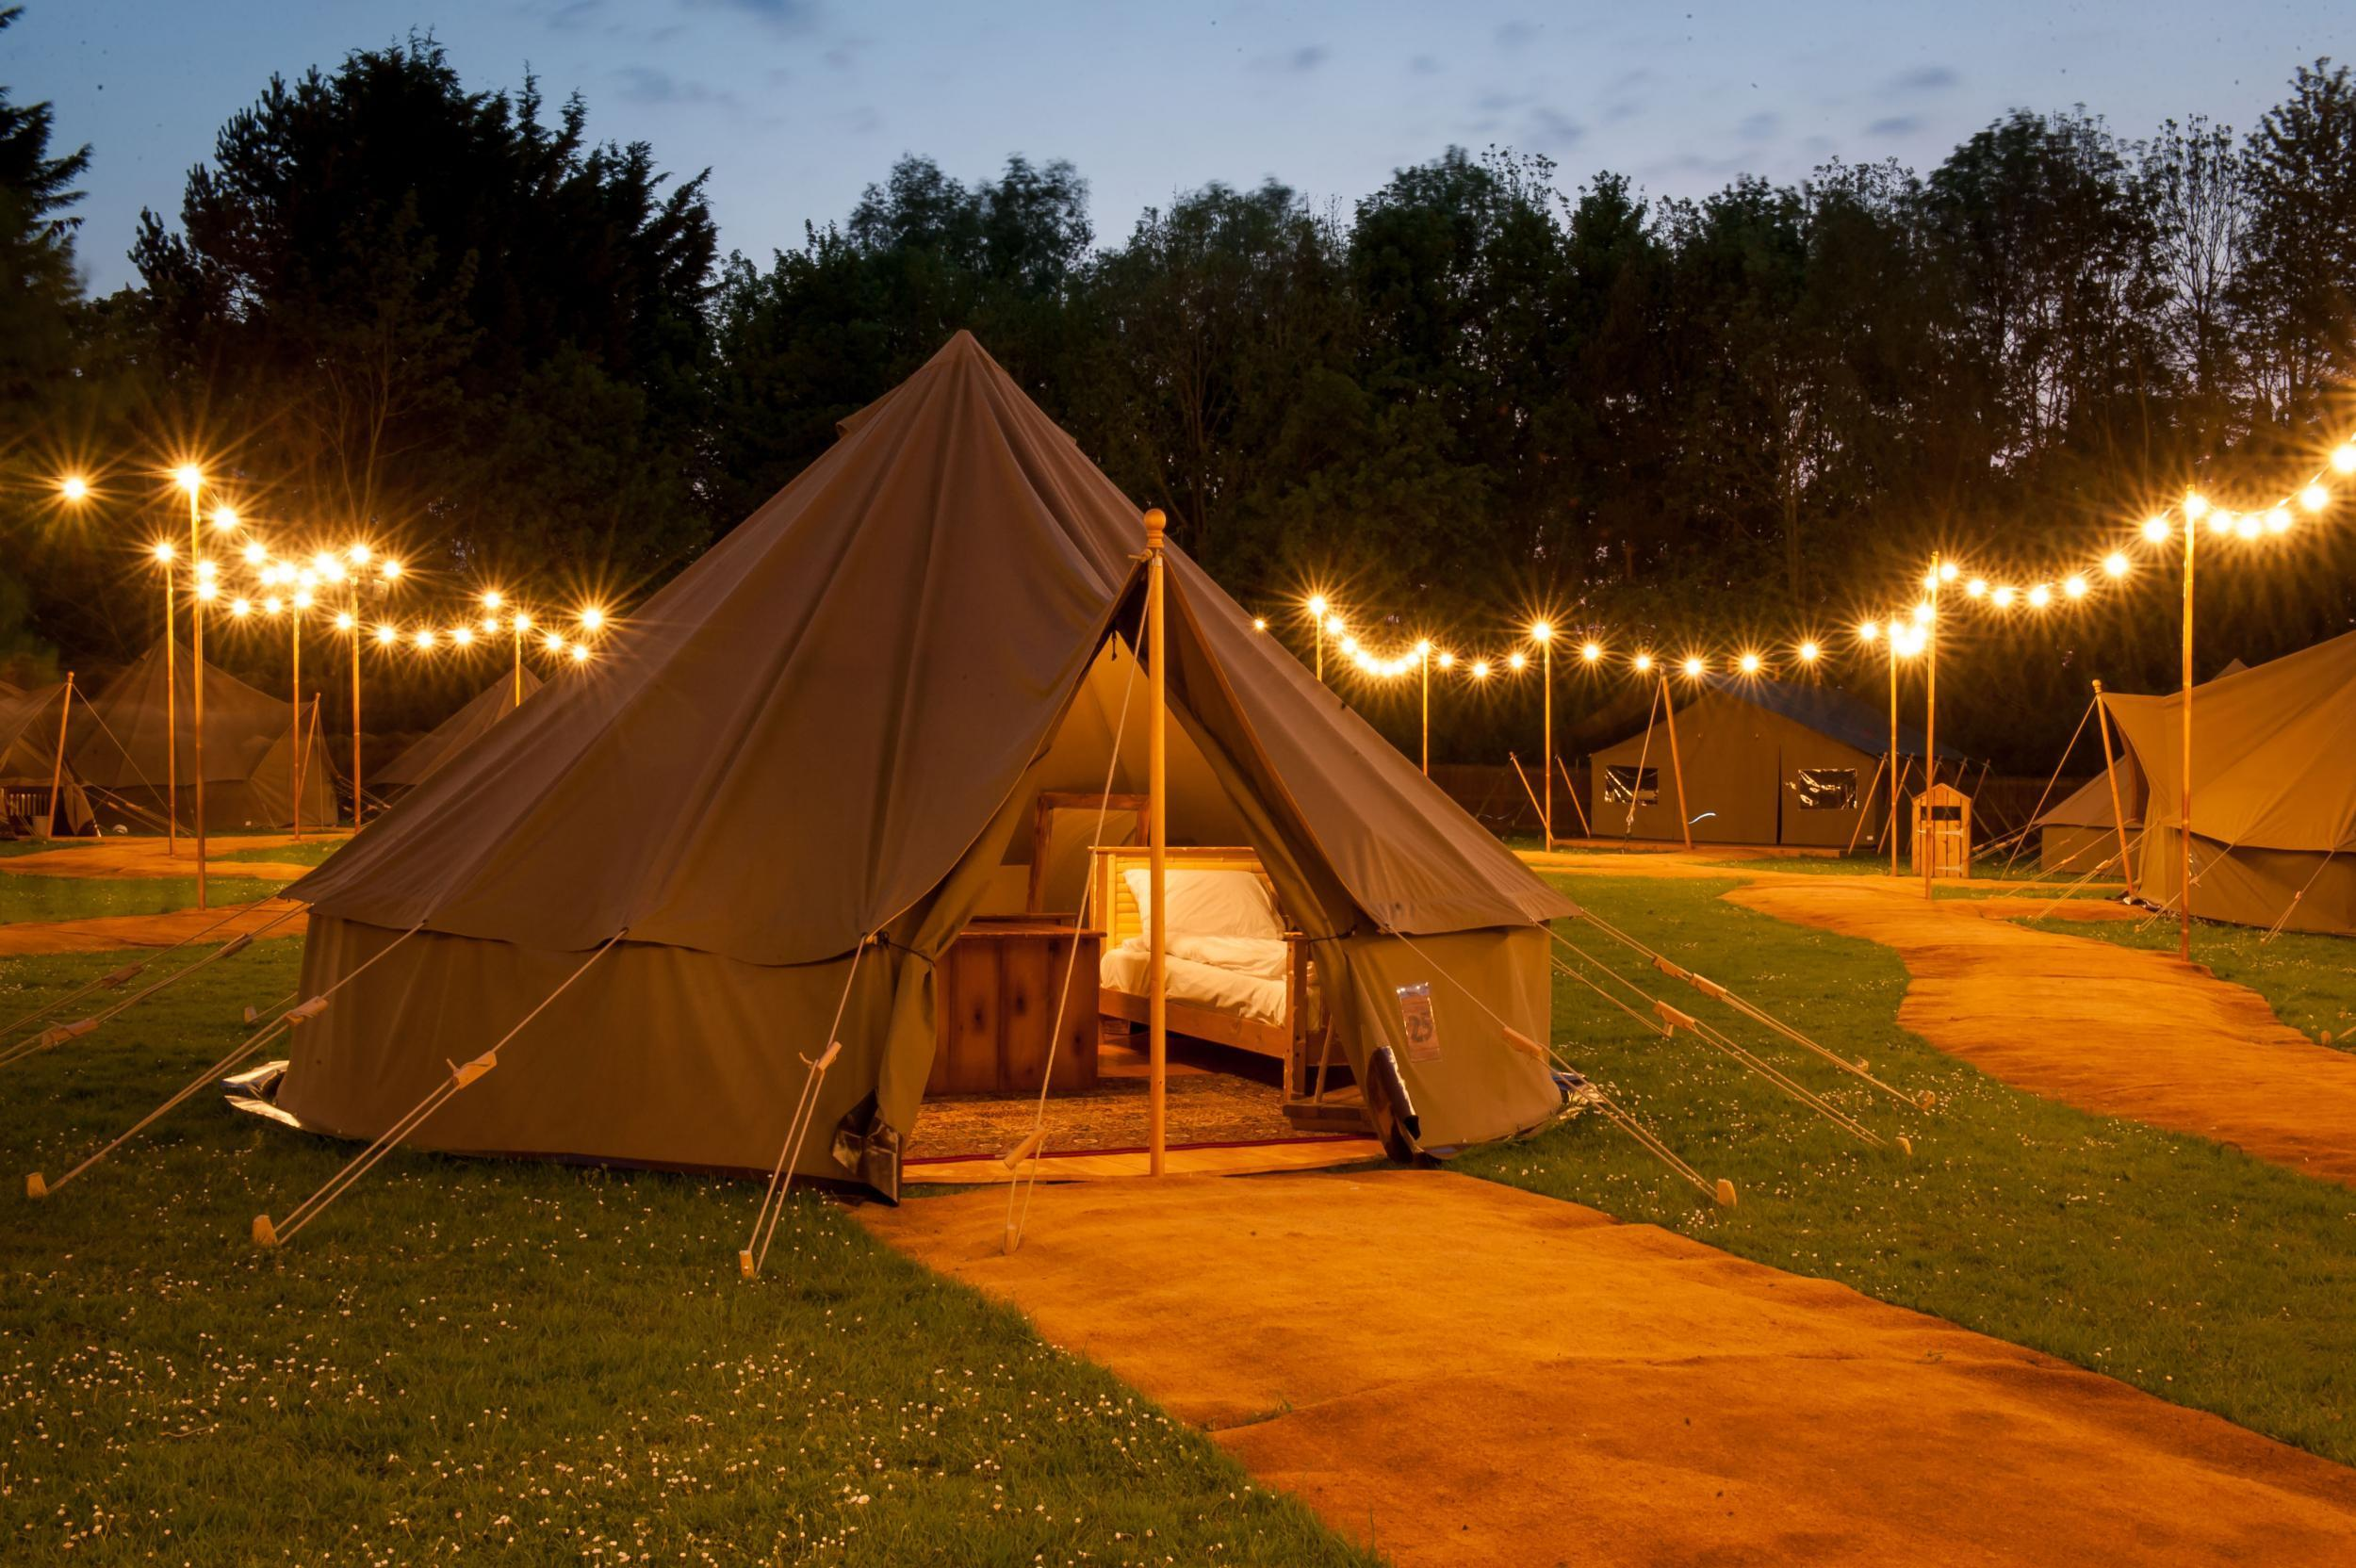 Review: Great camping experience